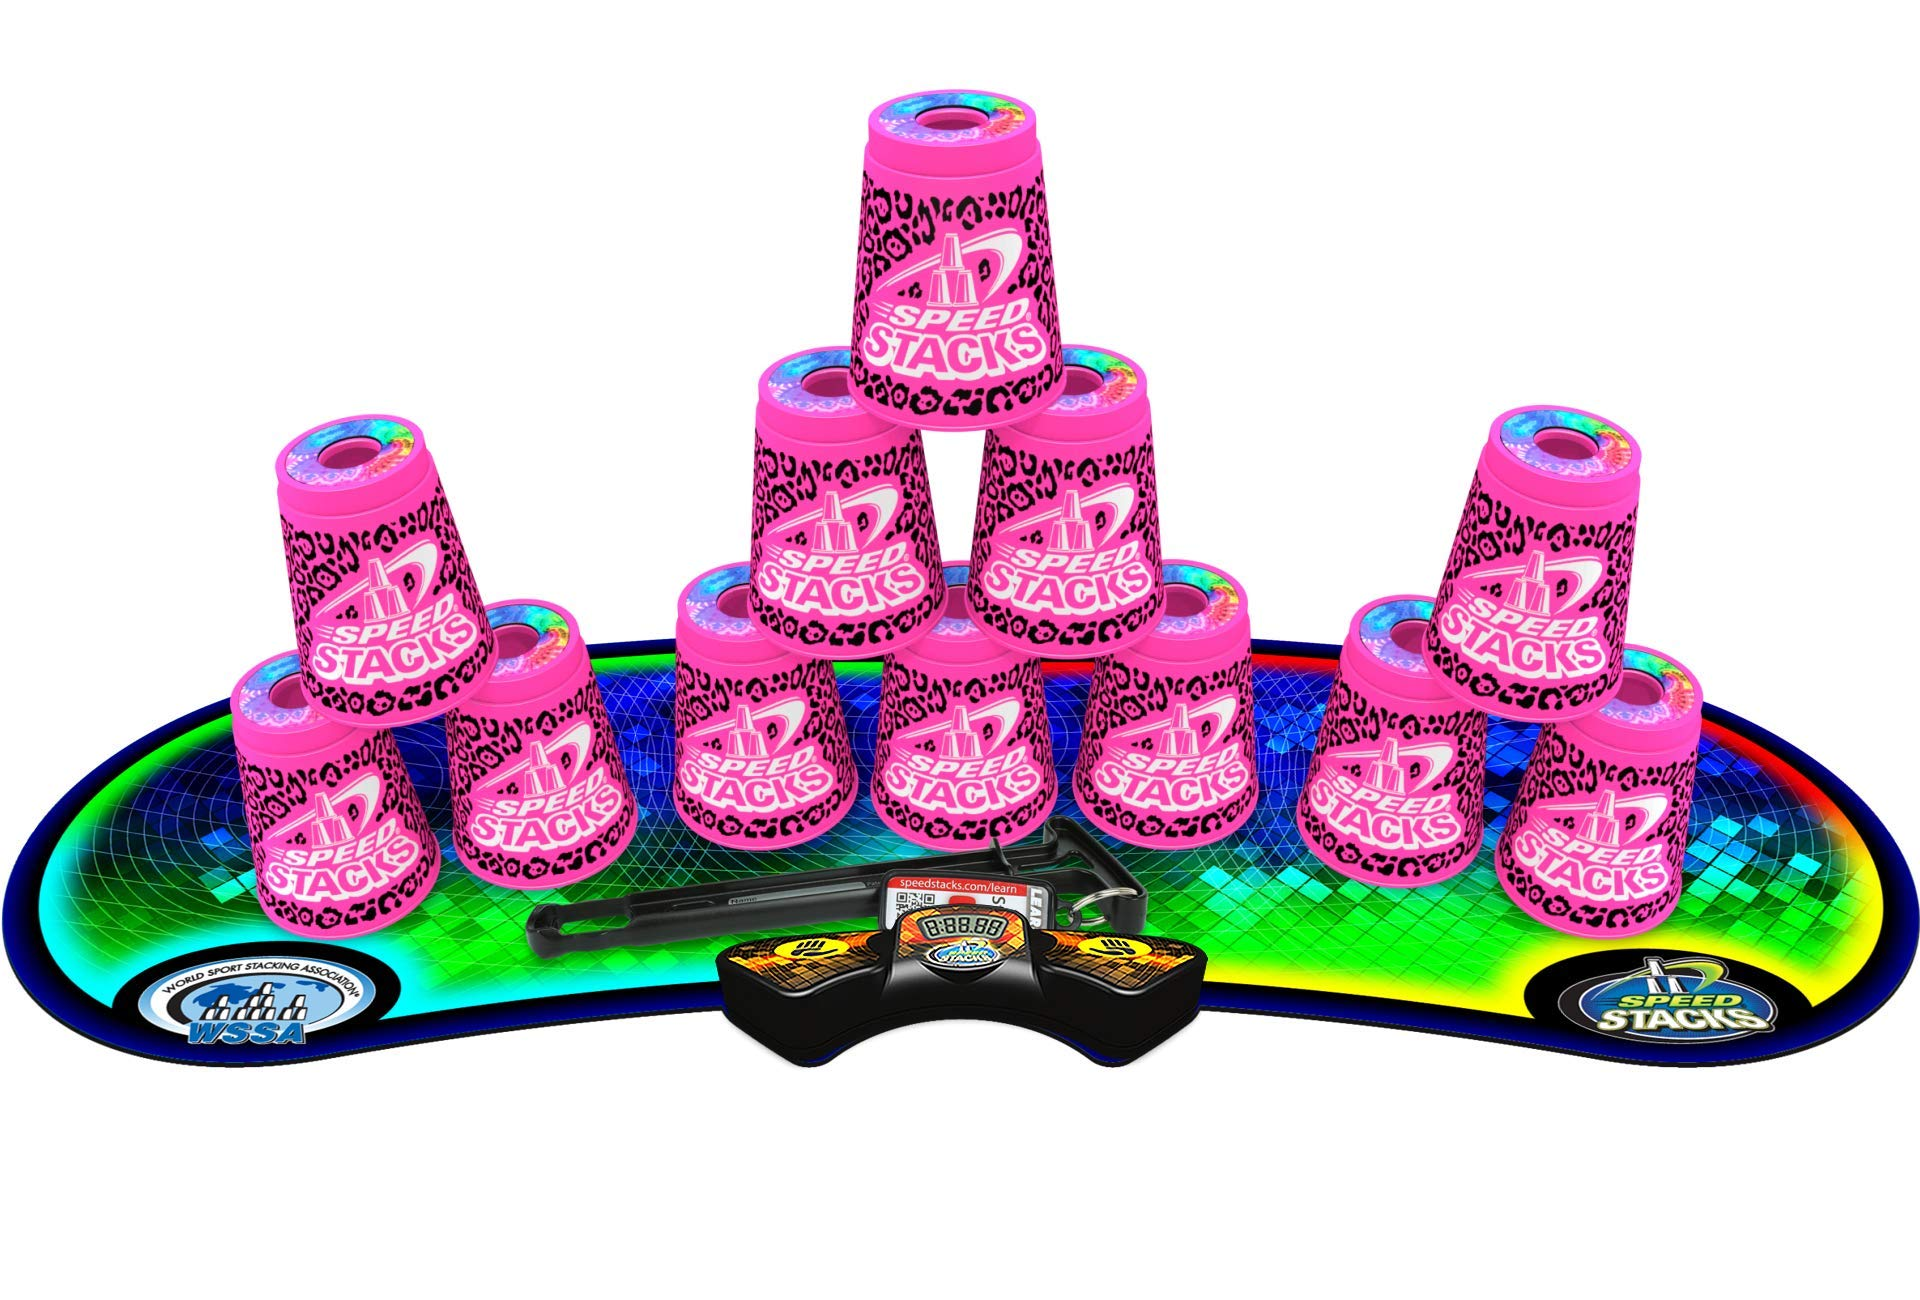 Speed Stacks Competitor - Zippy Leopard w/ Voxel Glow Mat